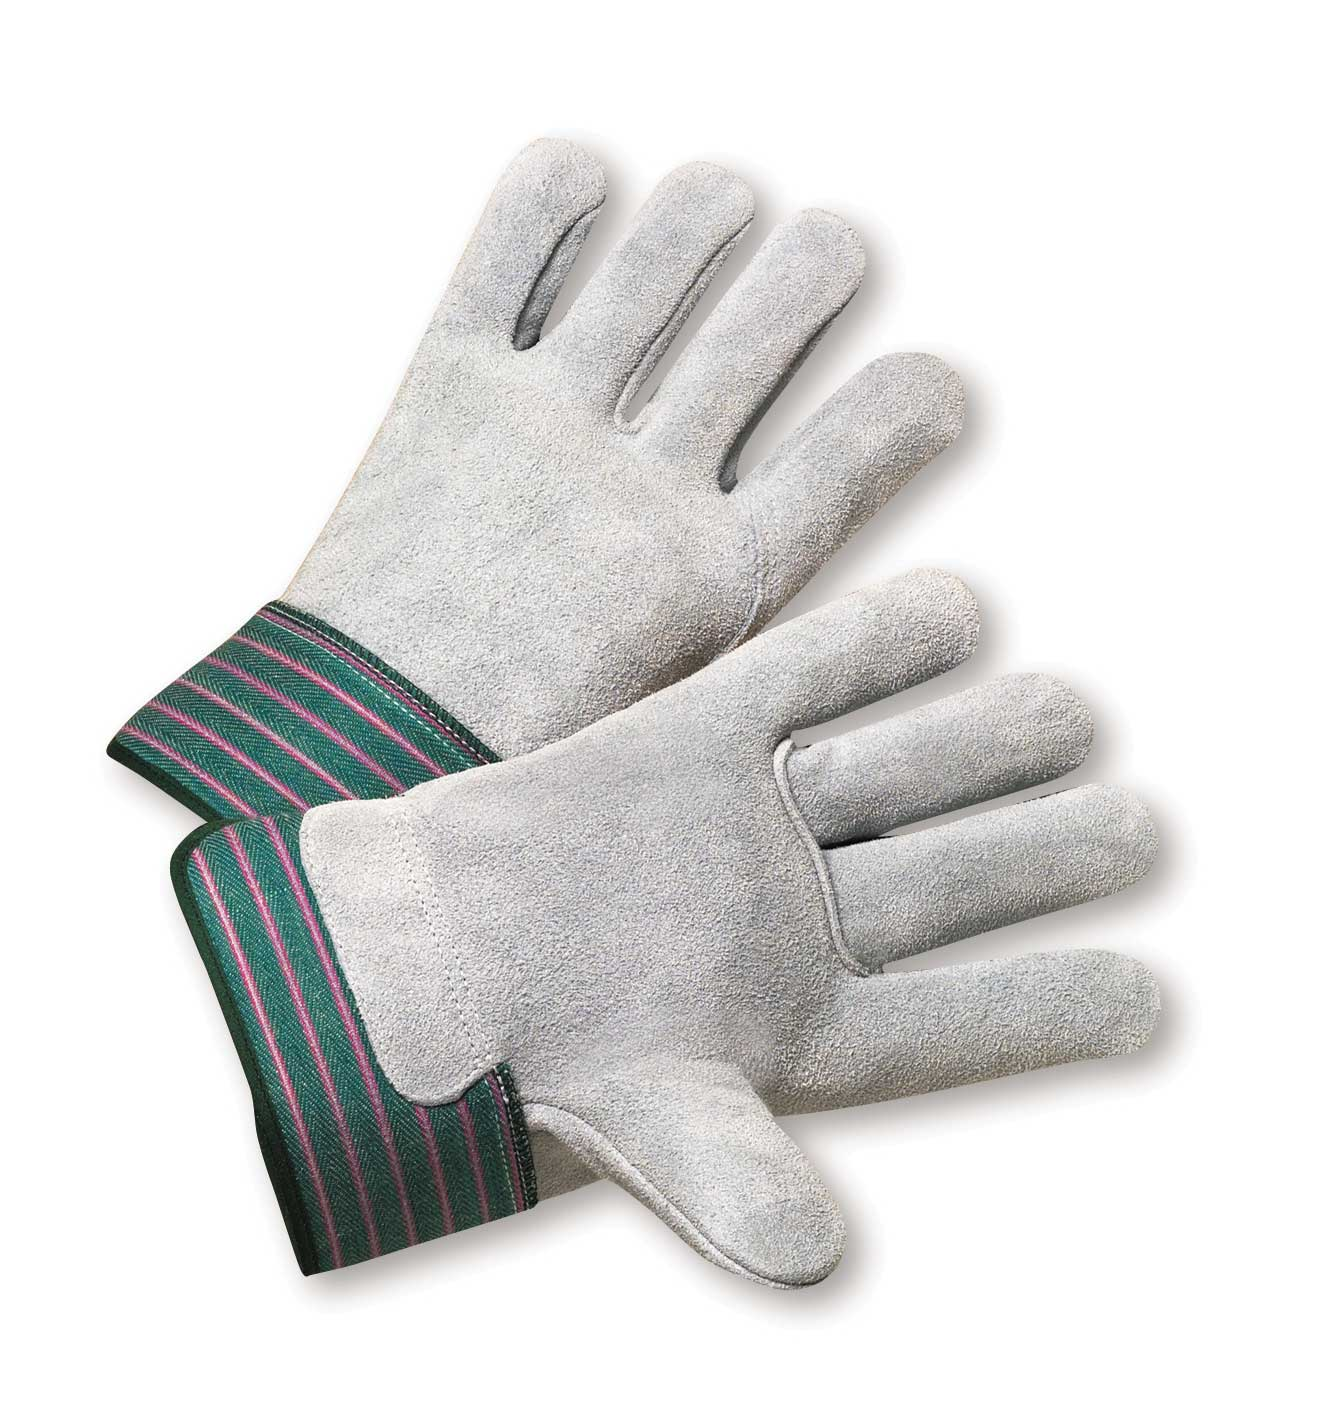 "Full Leather Palm & Back Work Gloves - L, 2-1/2"" Cuff"